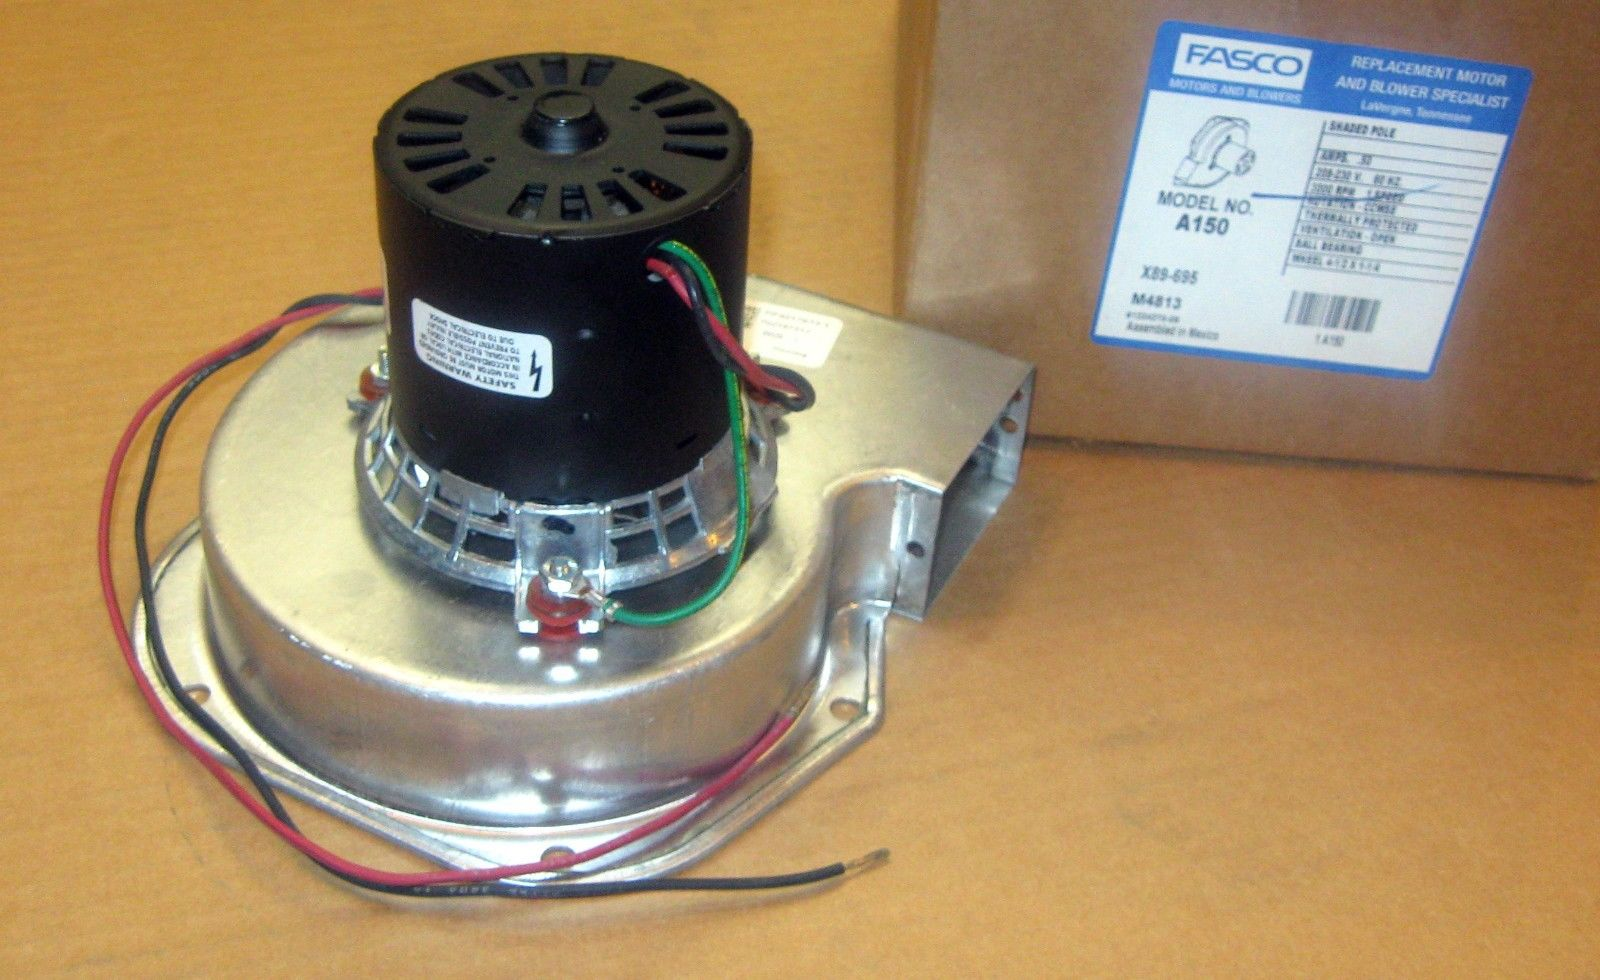 A150 fasco blower inducer motor fits trane 7021 7833 7021 for Fasco motors and blowers